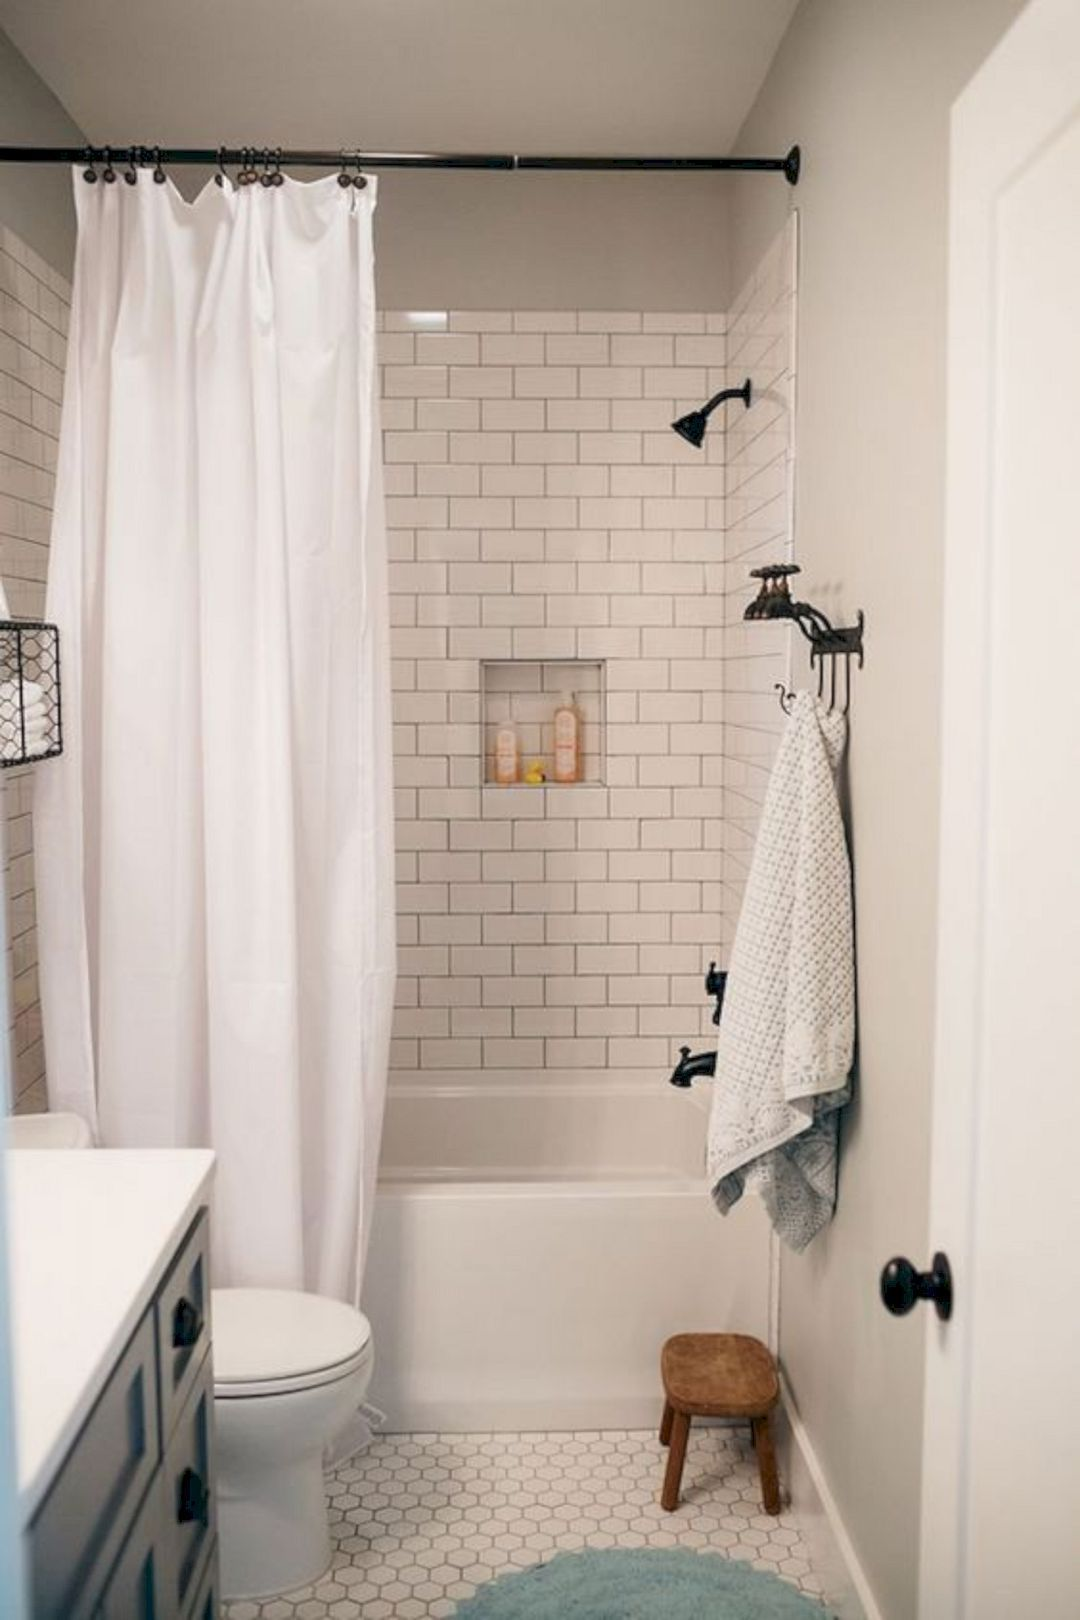 16 Small Bathroom Renovation Ideas https://www.futuristarchitecture on old fashion bath, old fashioned bathroom decor, old fashion tubs, old fashion interior design, old fashion day program, old fashion photography, old fashion accessories, old fashion dining room, old fashion paint, old world style decorating bathroom, old fashion room designs, old fashion door designs, old fashion kitchens, old fashion wallpaper designs, old fashion vintage, old bathroom ideas, old fashion home, old time bathrooms, old fashion embroidery, old fashion bedrooms,